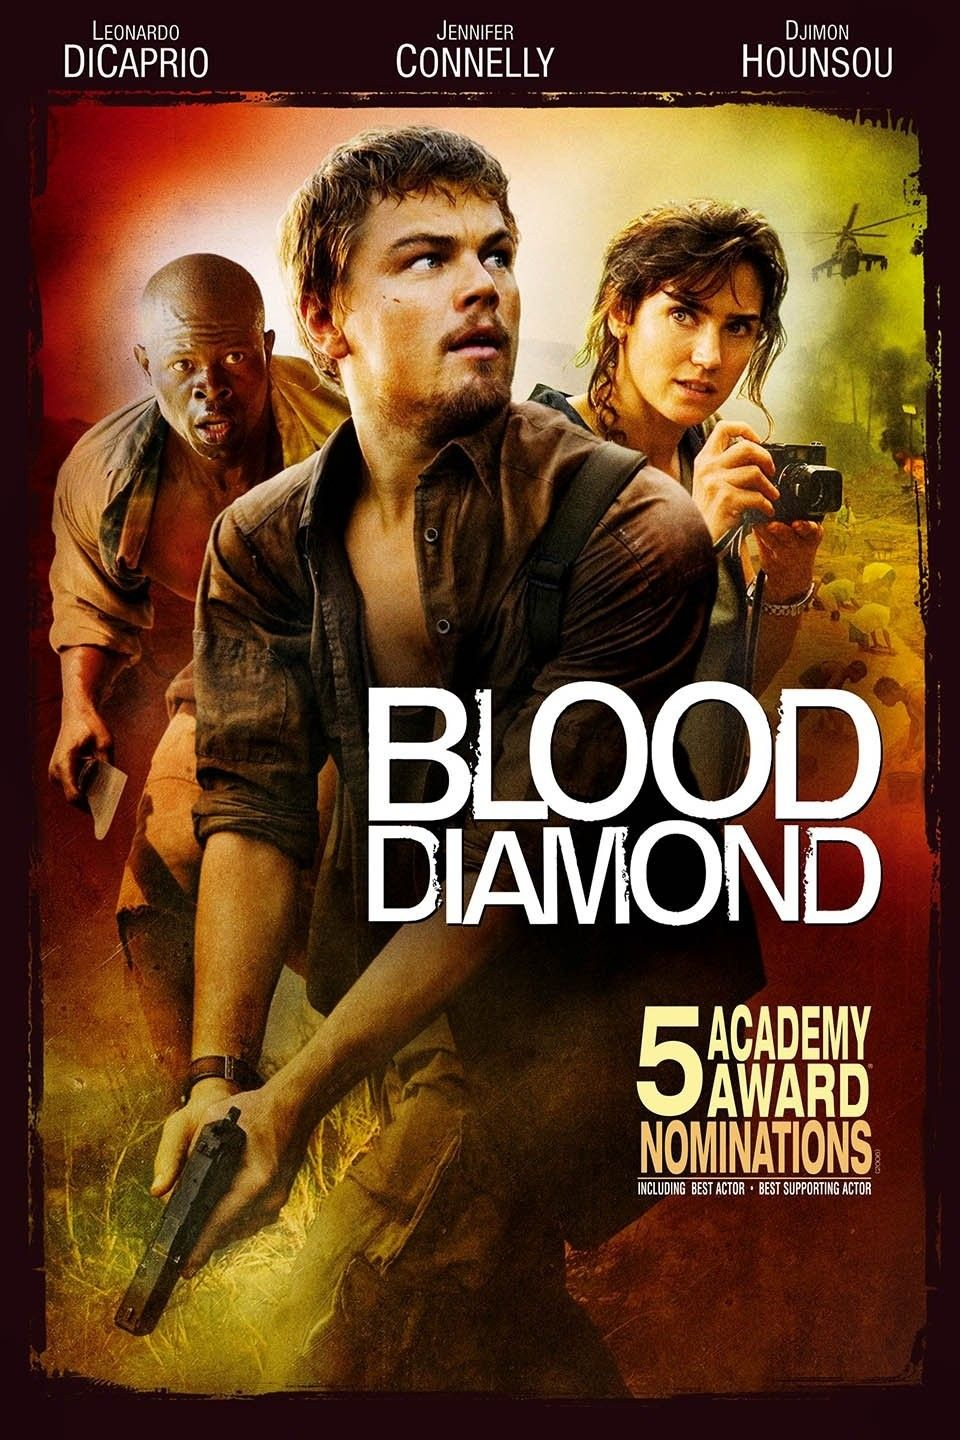 Blood Diamonds Libro Blood Diamond 2006 Best Movies Diamond Movie Leonardo